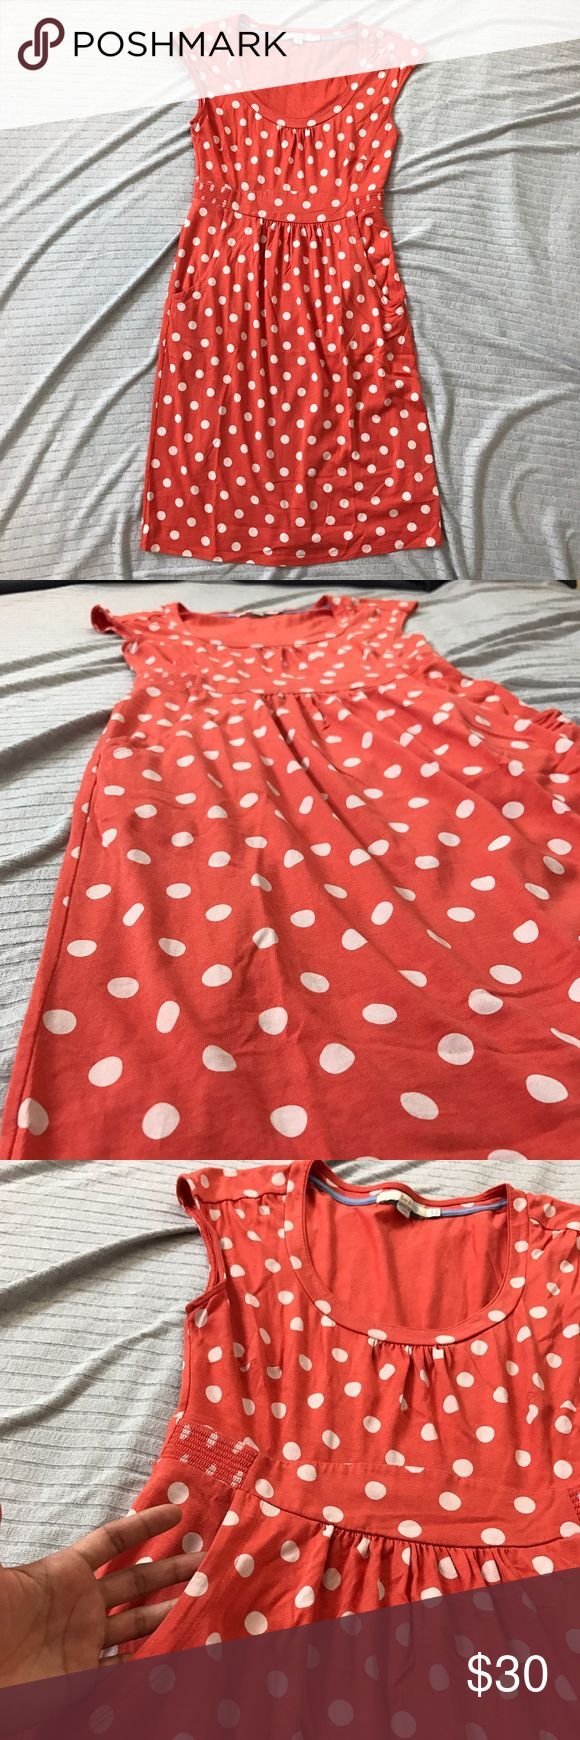 Boden Coral & White Polka Dot Dress This is a casual weekend dress from Boden. It is a coral pink with white polka dot pattern. It has front pockets, a scoop neck and short sleeves. The knit jersey material has stretch. Armpit to armpit is 15 in, waist is 13.5, hips 17.5 in. length is 36 in. (712) Boden Dresses Midi